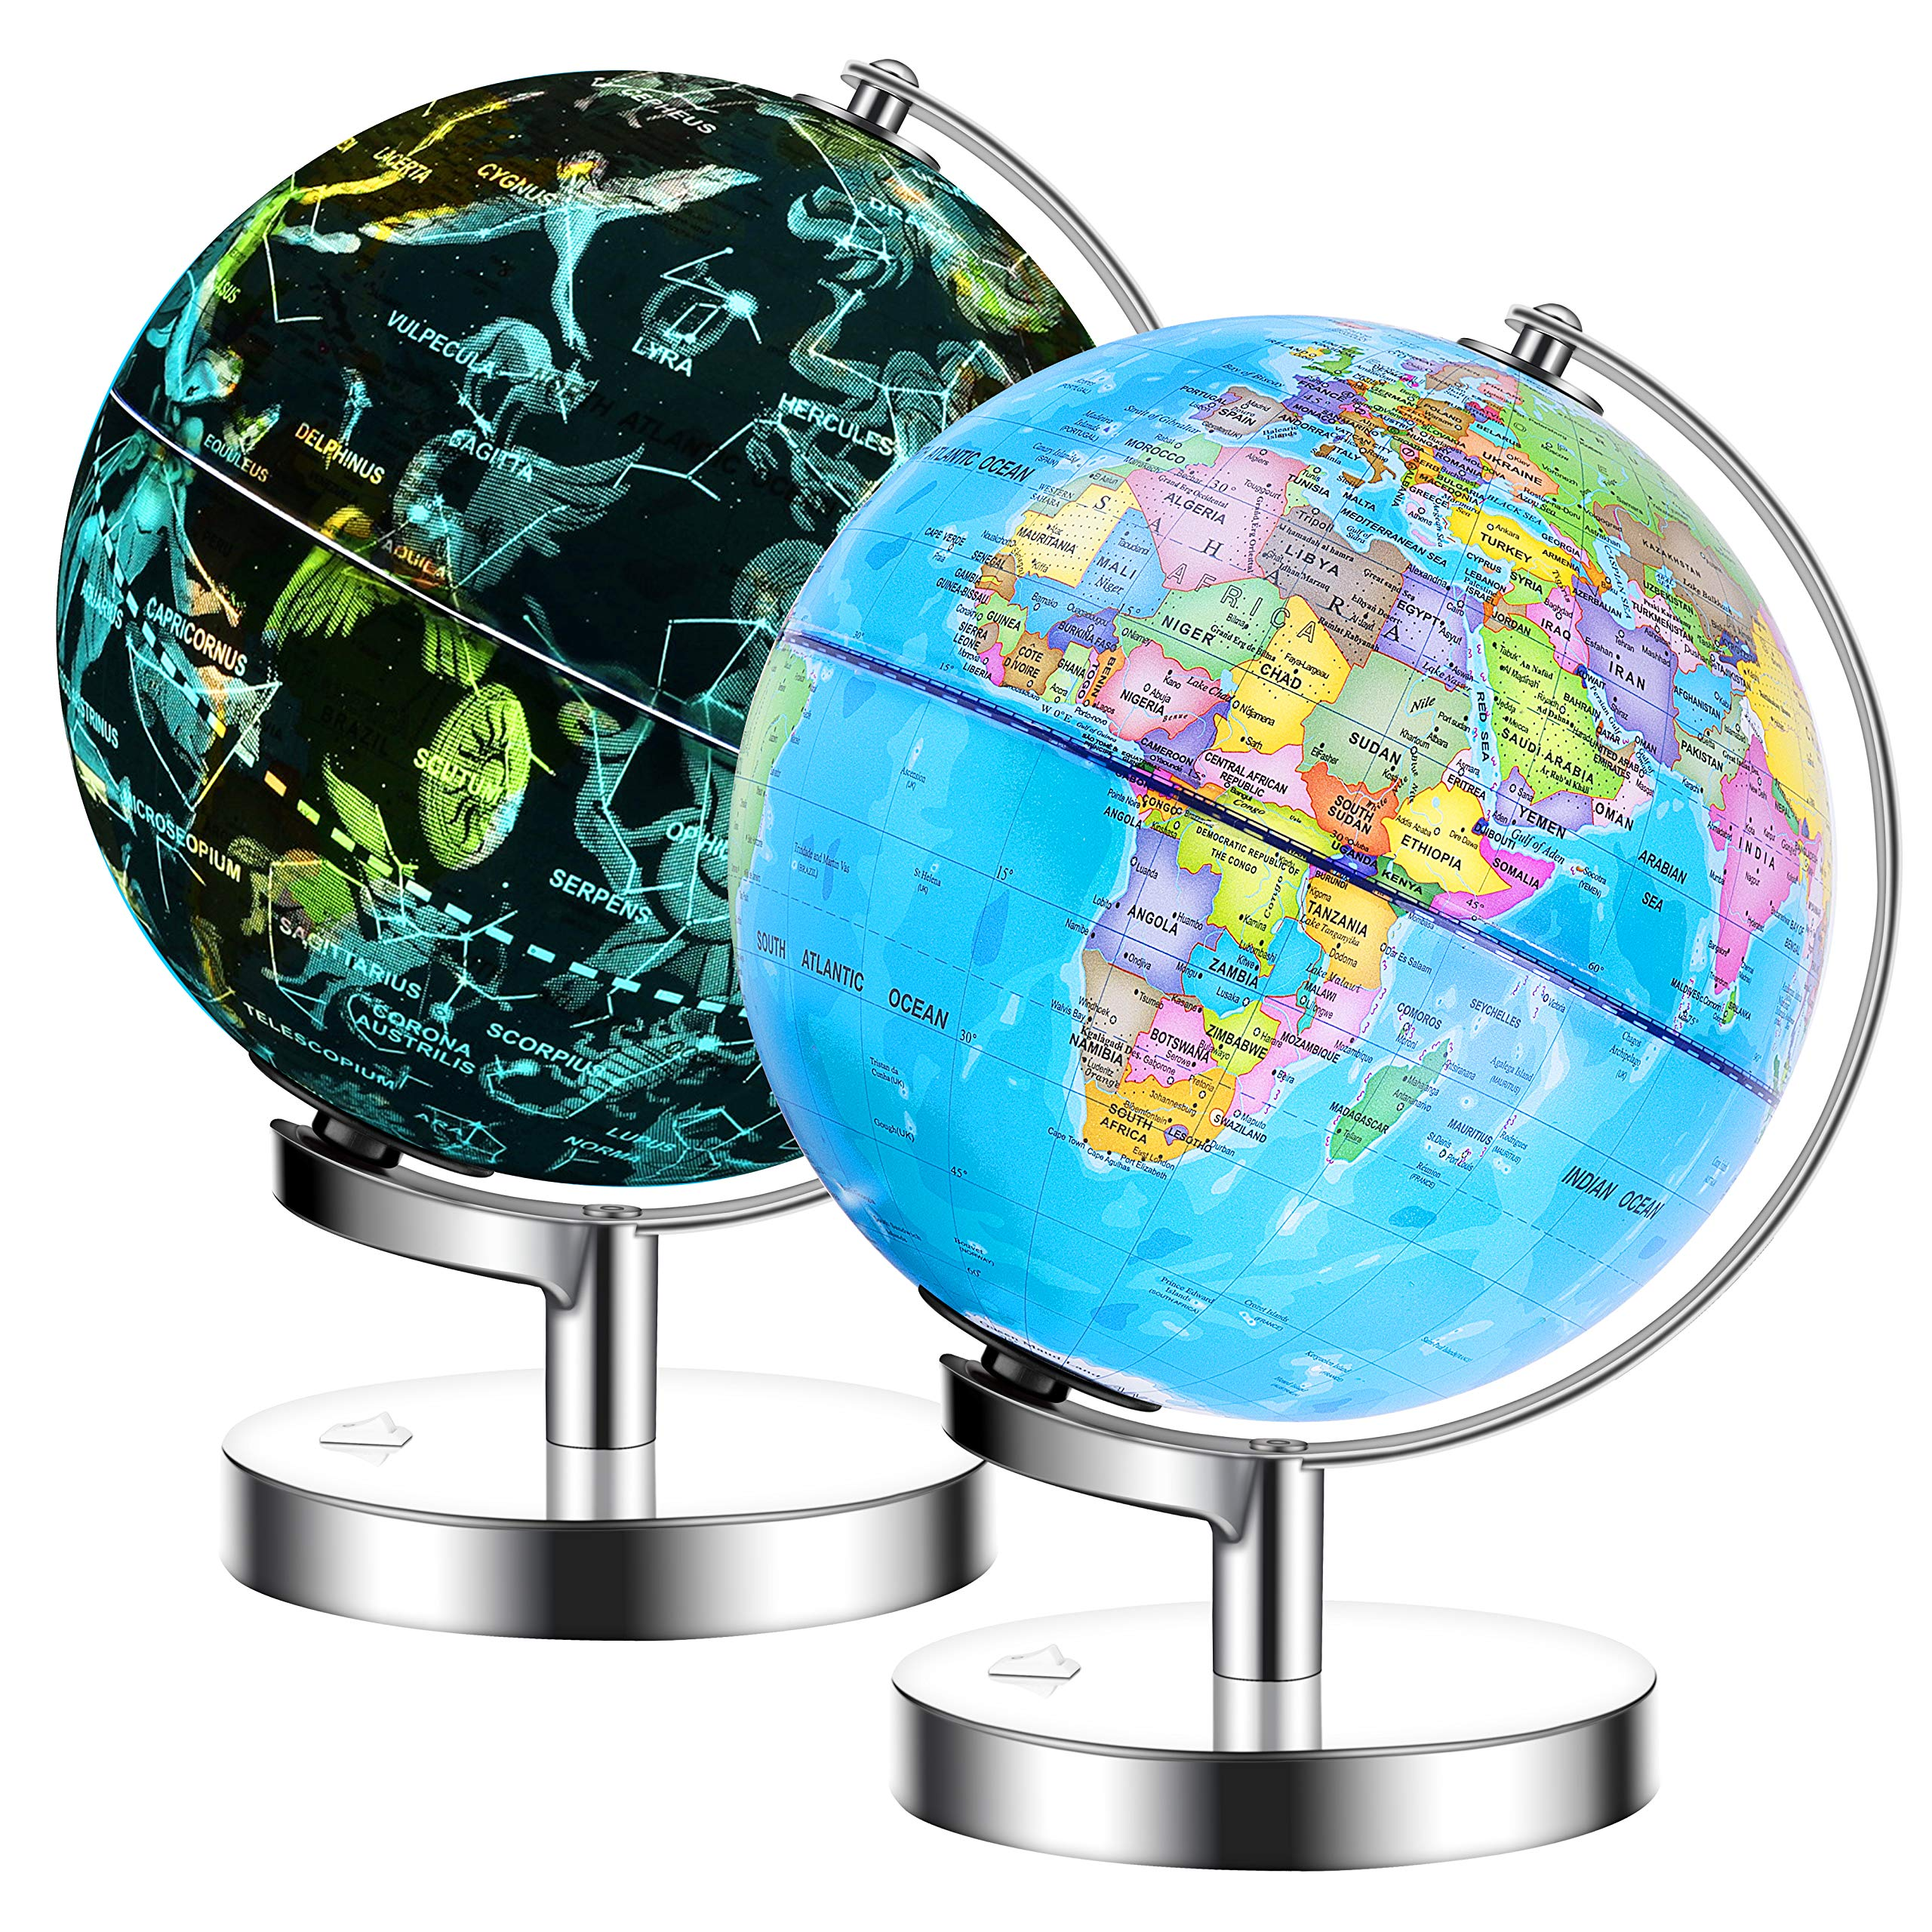 IKONG 8 inch Iluminated World Globe with Stand-Educational Gift Kids Globe Built in LED Light with World Map and Constellation View,Interactive Desktop Earth Globe,Magnifier & Batteries Included